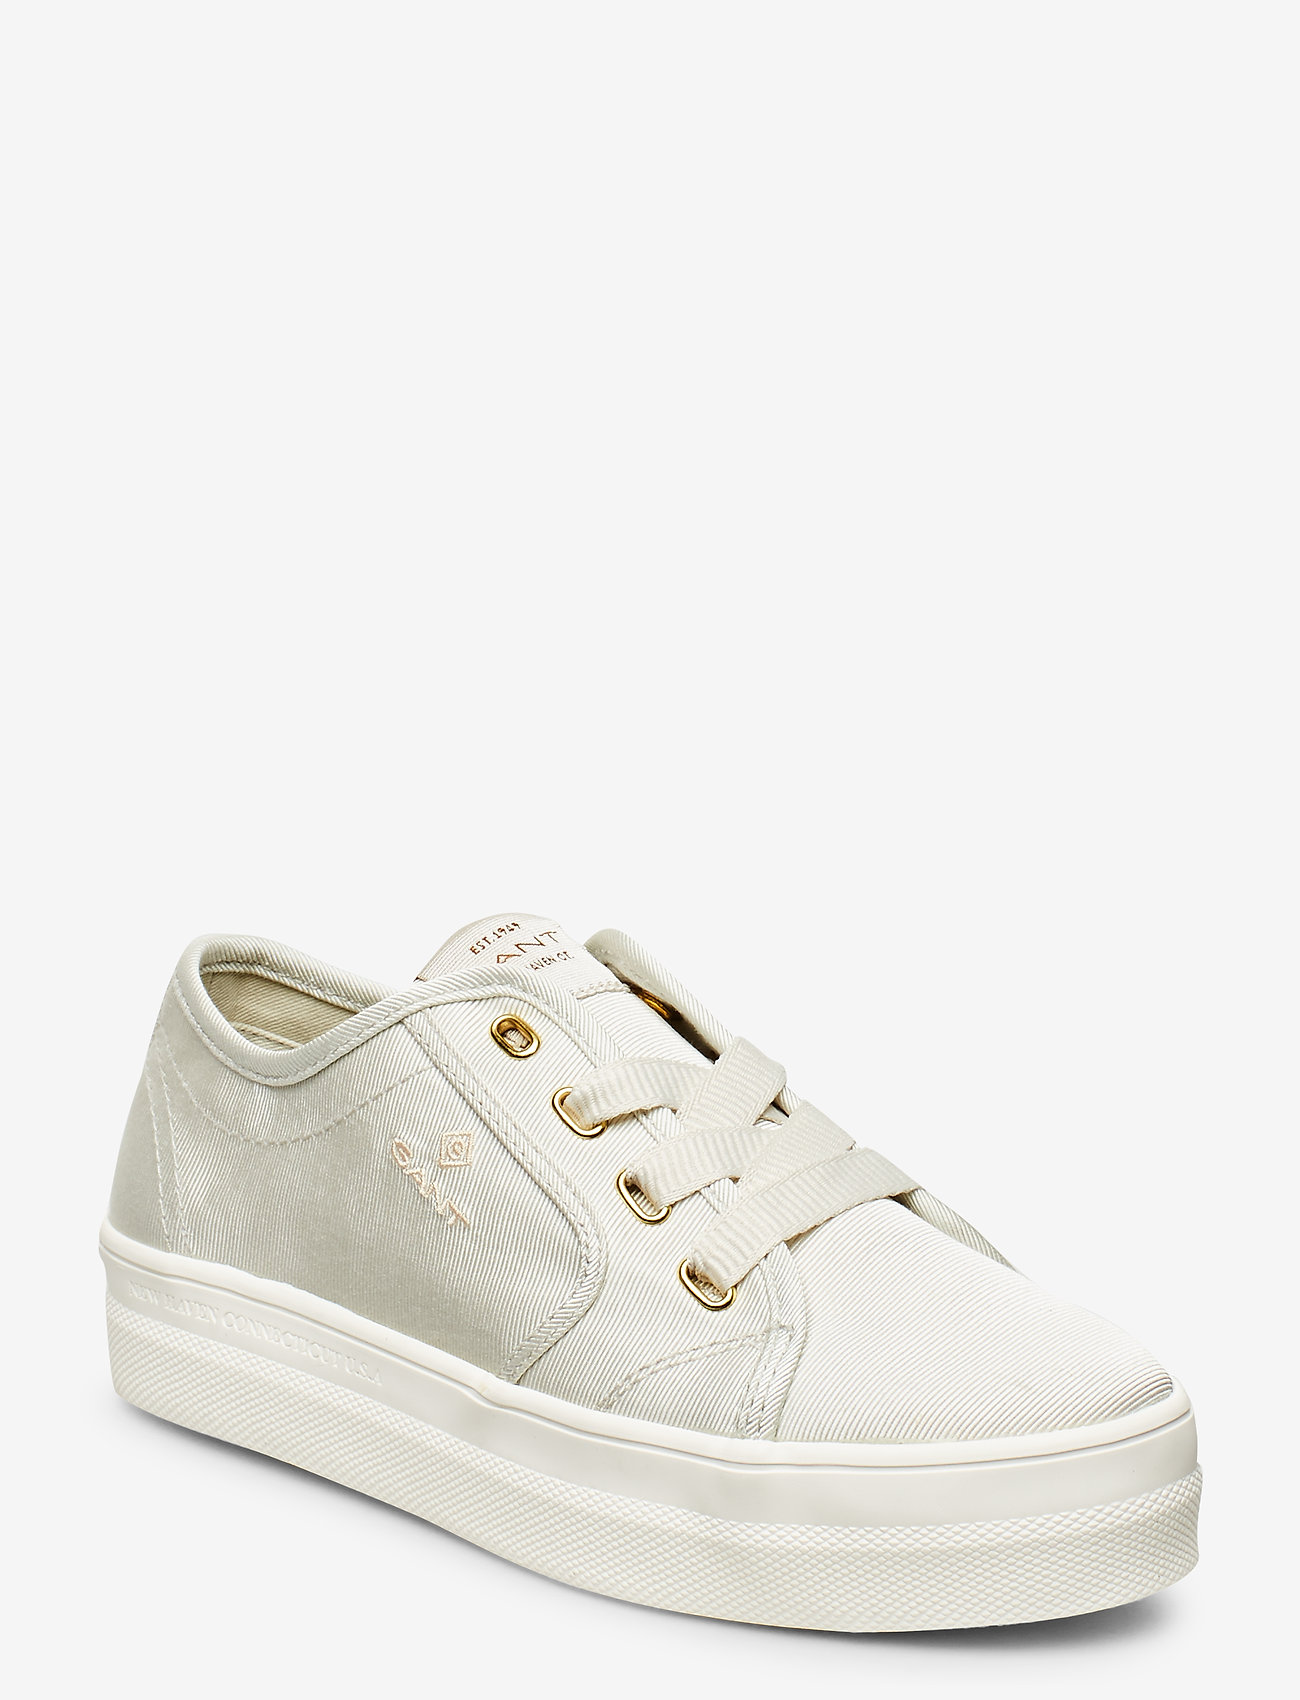 GANT - Leisha Low lace shoes - low top sneakers - silver gray - 0